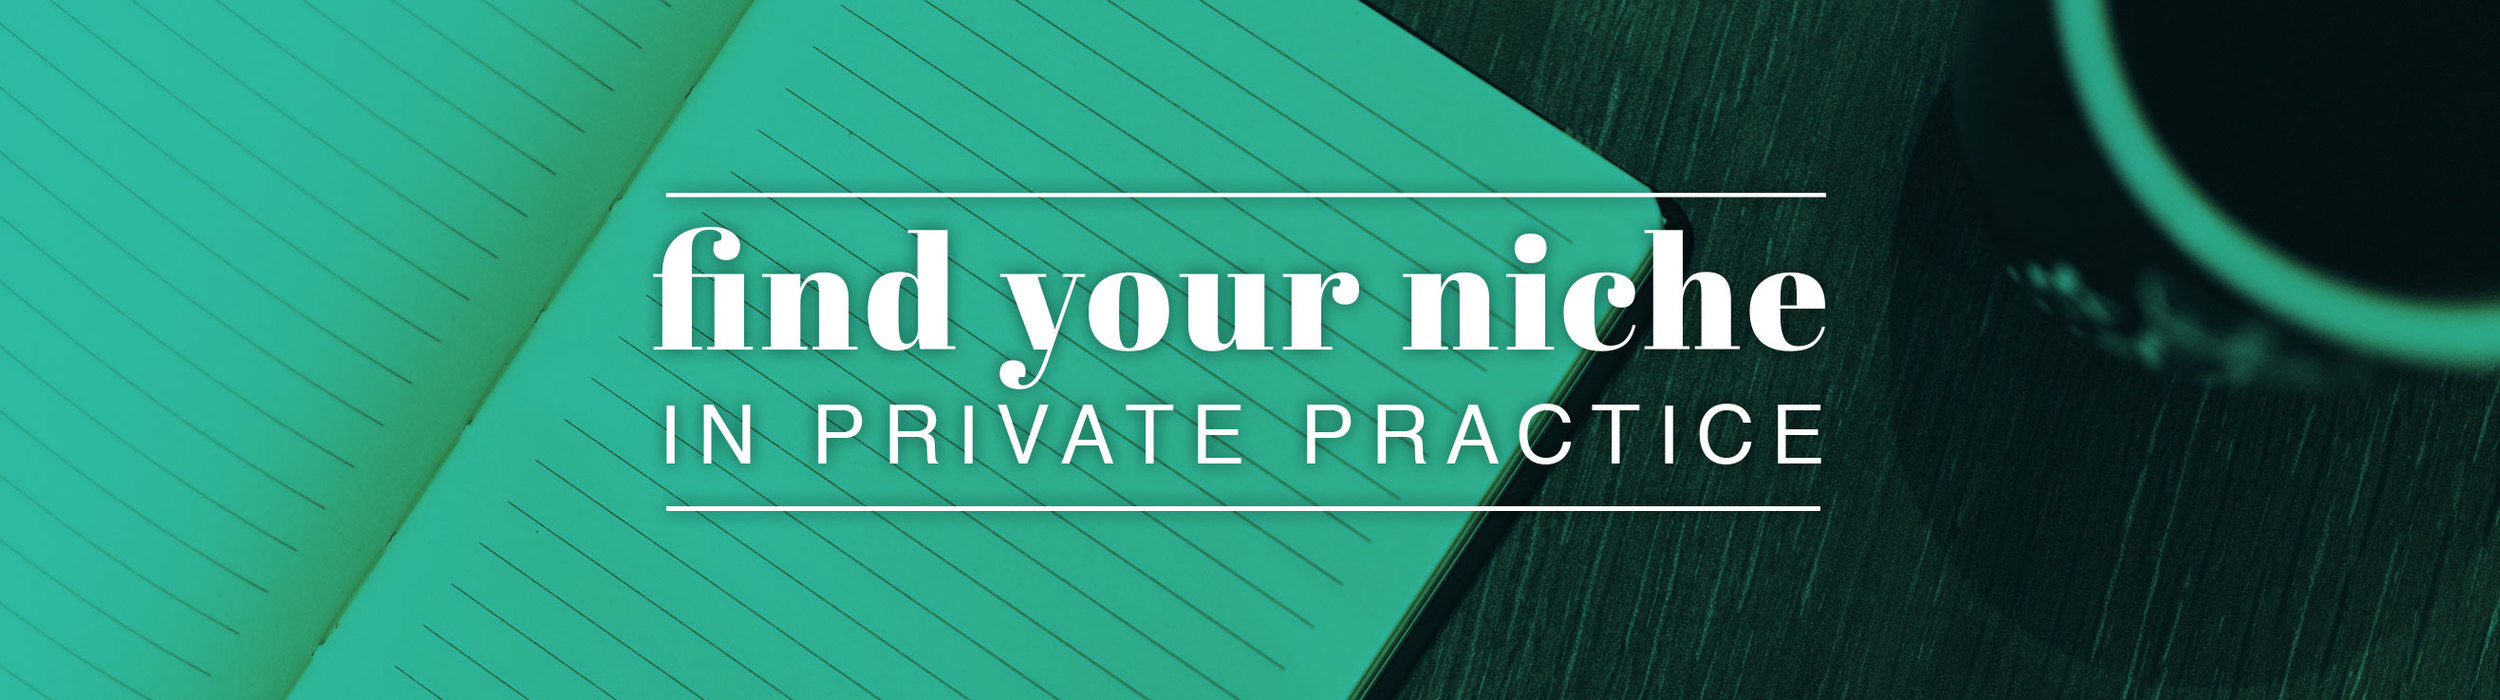 Counseling Practice Niche | Therapy Niche | Niche in Private Practice